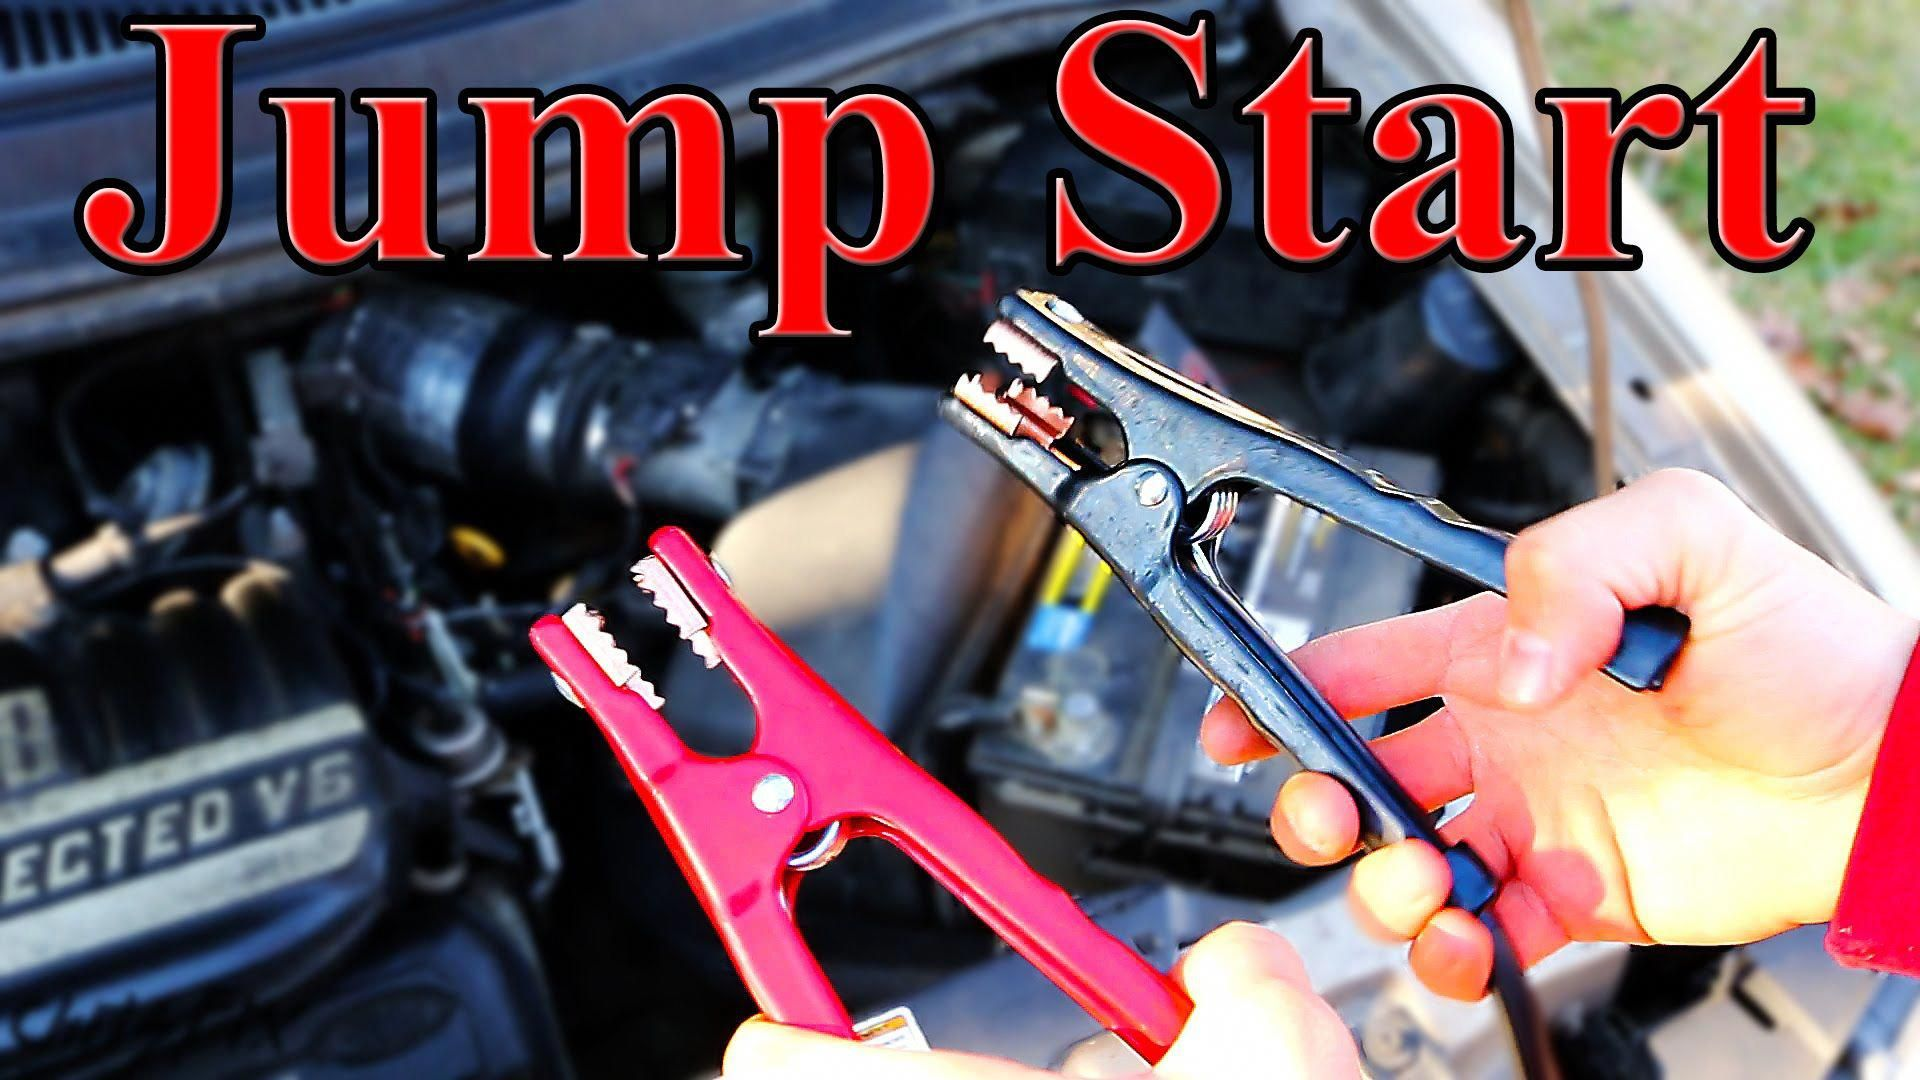 Jump start a Car. Anyone who drives should know how to